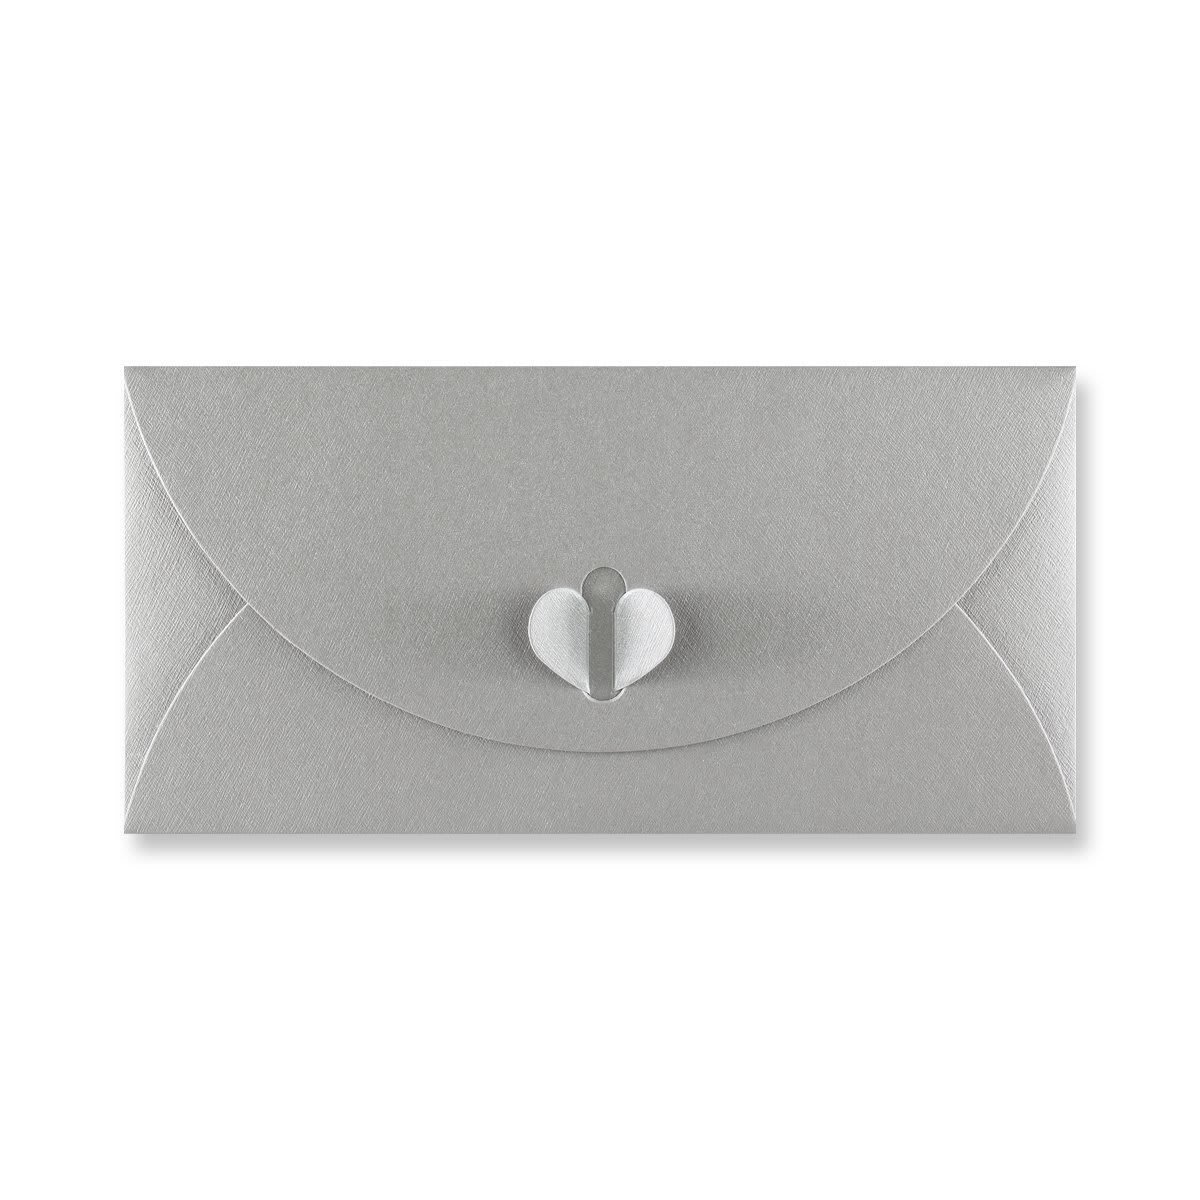 DL SILVER BUTTERFLY ENVELOPES